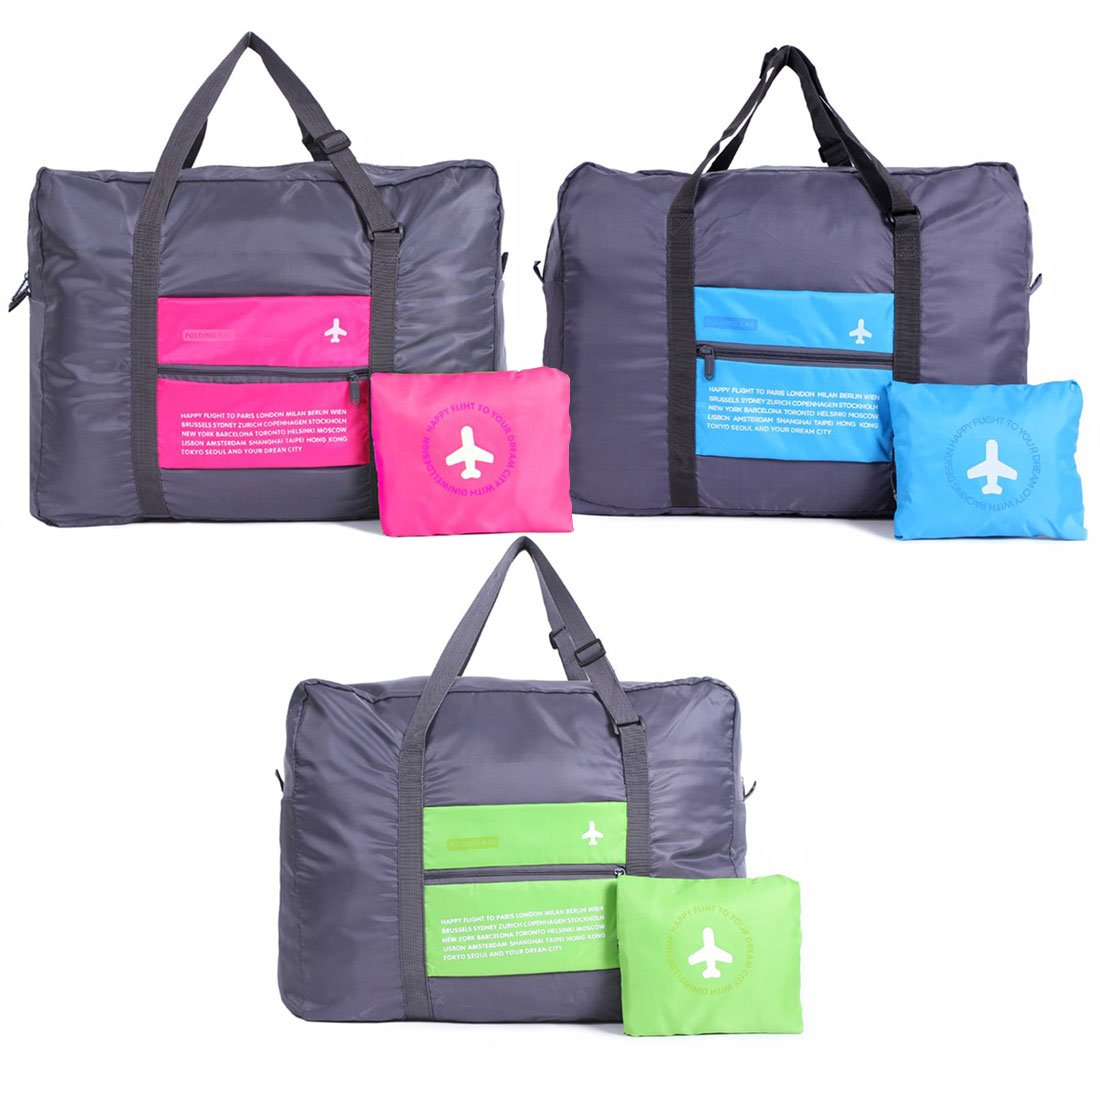 Foldable Travel Duffel Bag 32L Waterproof Lightweight Sport Gym Luggage Bag (3Pcs - Pink, Green, Blue)